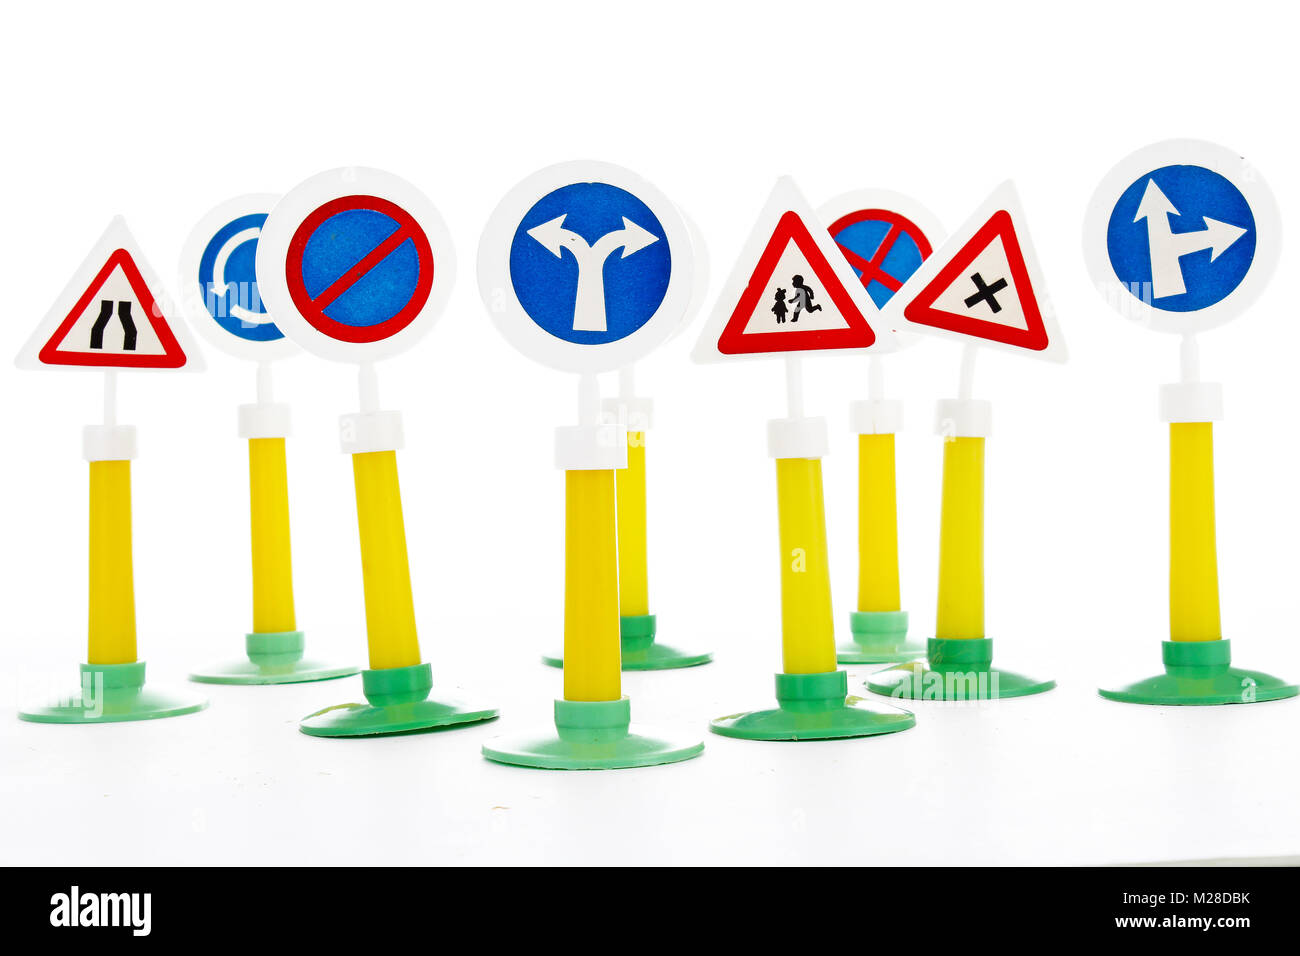 The Highway Code, road safety and vehicle rules driving law road sign toys. - Stock Image